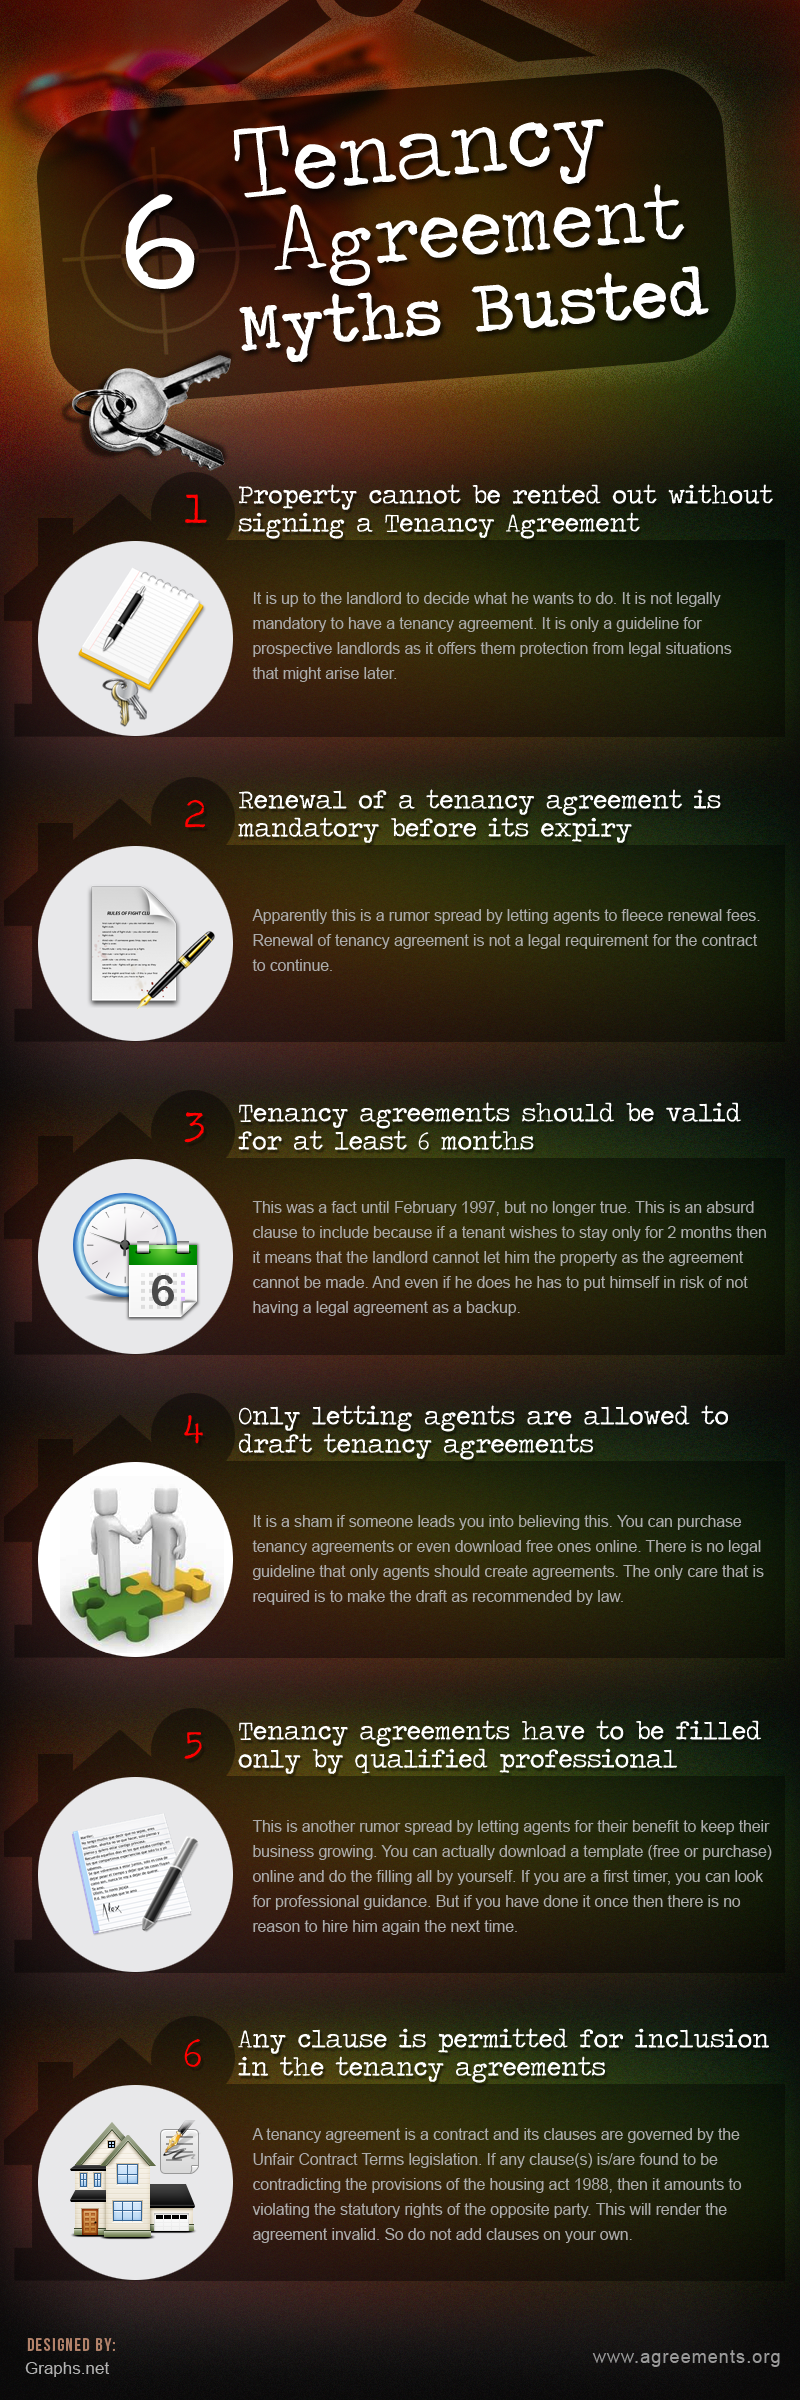 6 Myths Surrounding Tenancy Agreement Busted